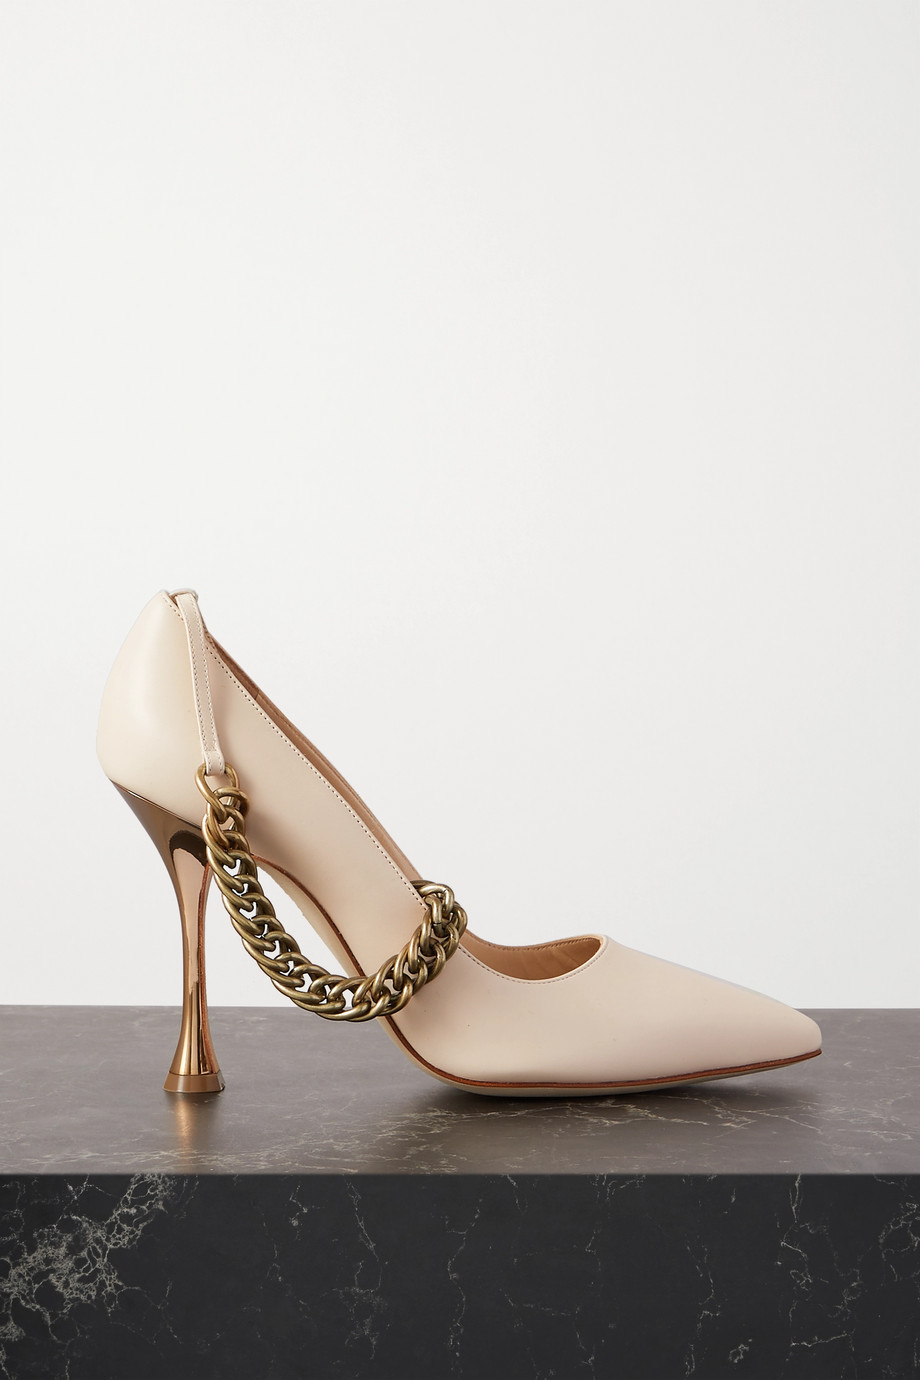 Manolo Blahnik Kurillos chain-embellished leather pumps